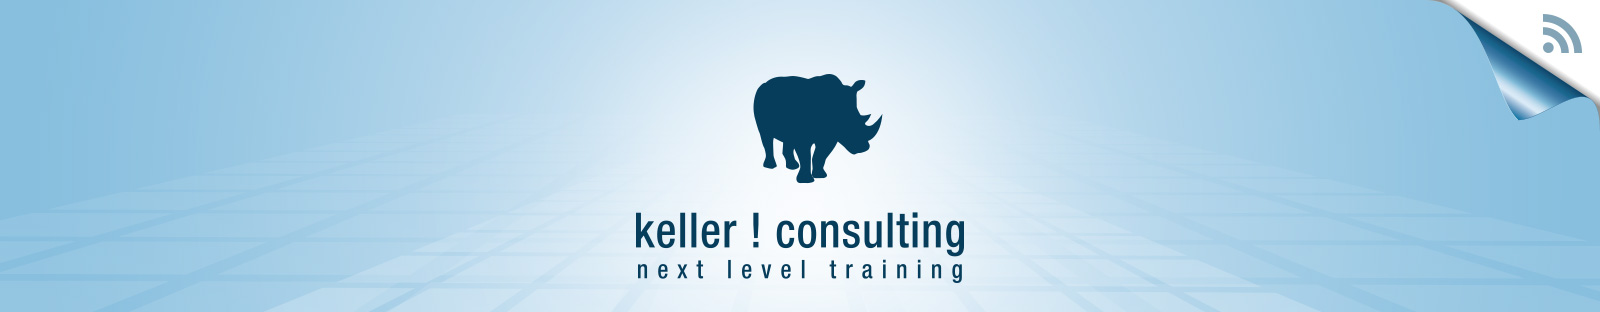 keller ! consulting